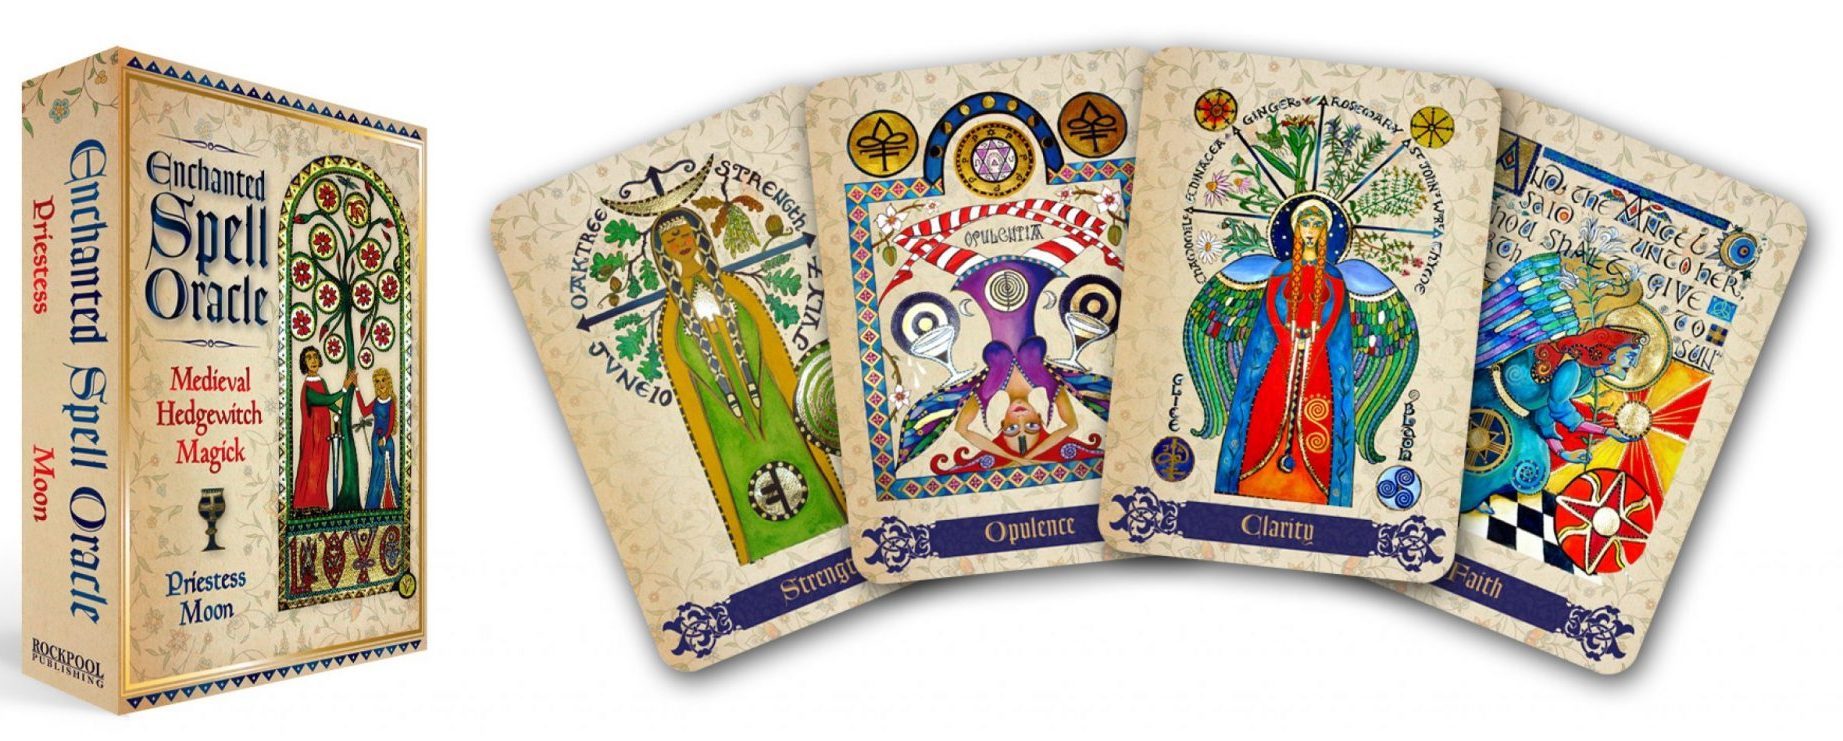 cropped-cropped-cropped-enchantedspelloracle_box_and_cards-00221.jpg